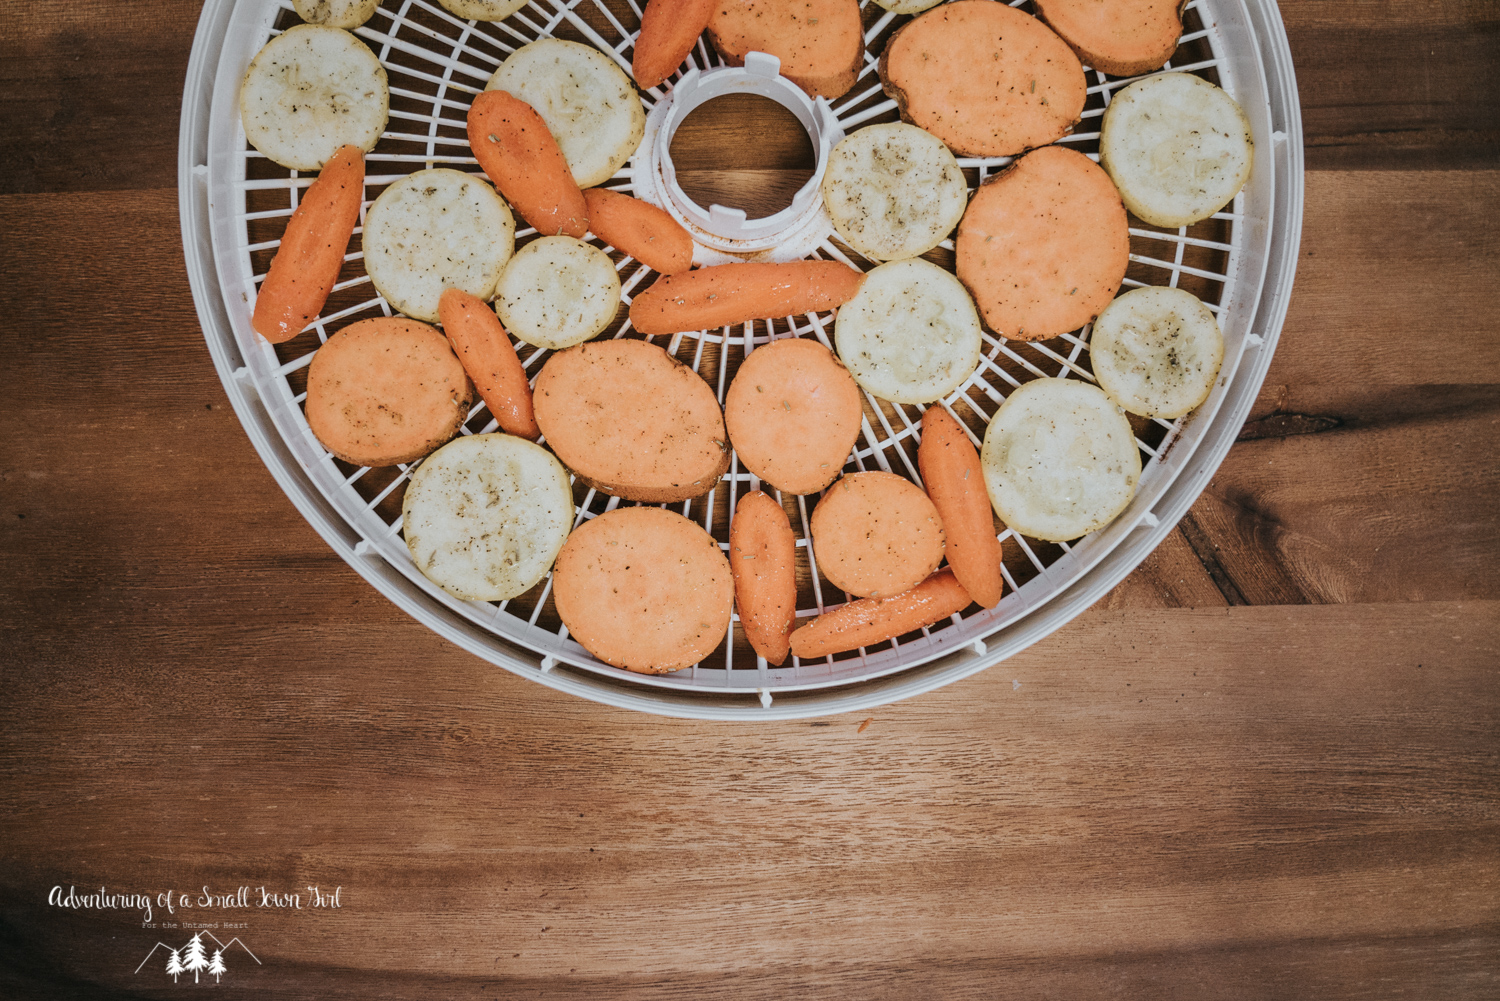 Dehydrated Vegetable Chips By Adventuring of a Small Town Girl (ASTG) - Backpacking Recipes - Recipes for Adventures - Dehydrated Recipes - Paleo Backpacking Recipes-3.jpg